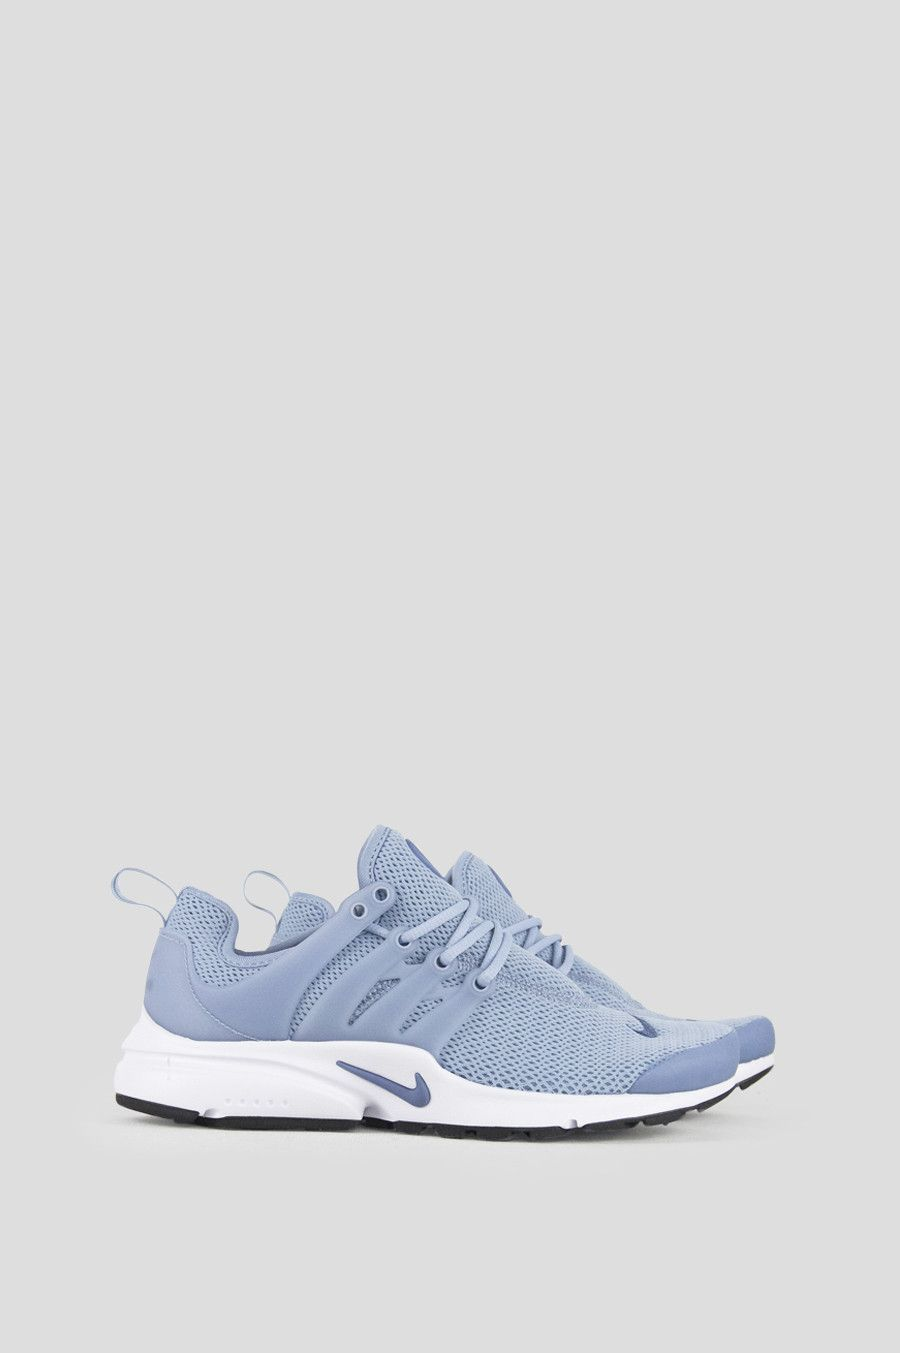 new arrival 33d94 7e083 The Nike Air Presto Women s Shoe is inspired by the comfort and minimalism  of a classic T-shirt for lightweight everyday comfort. - Product Code   878068-400 ...